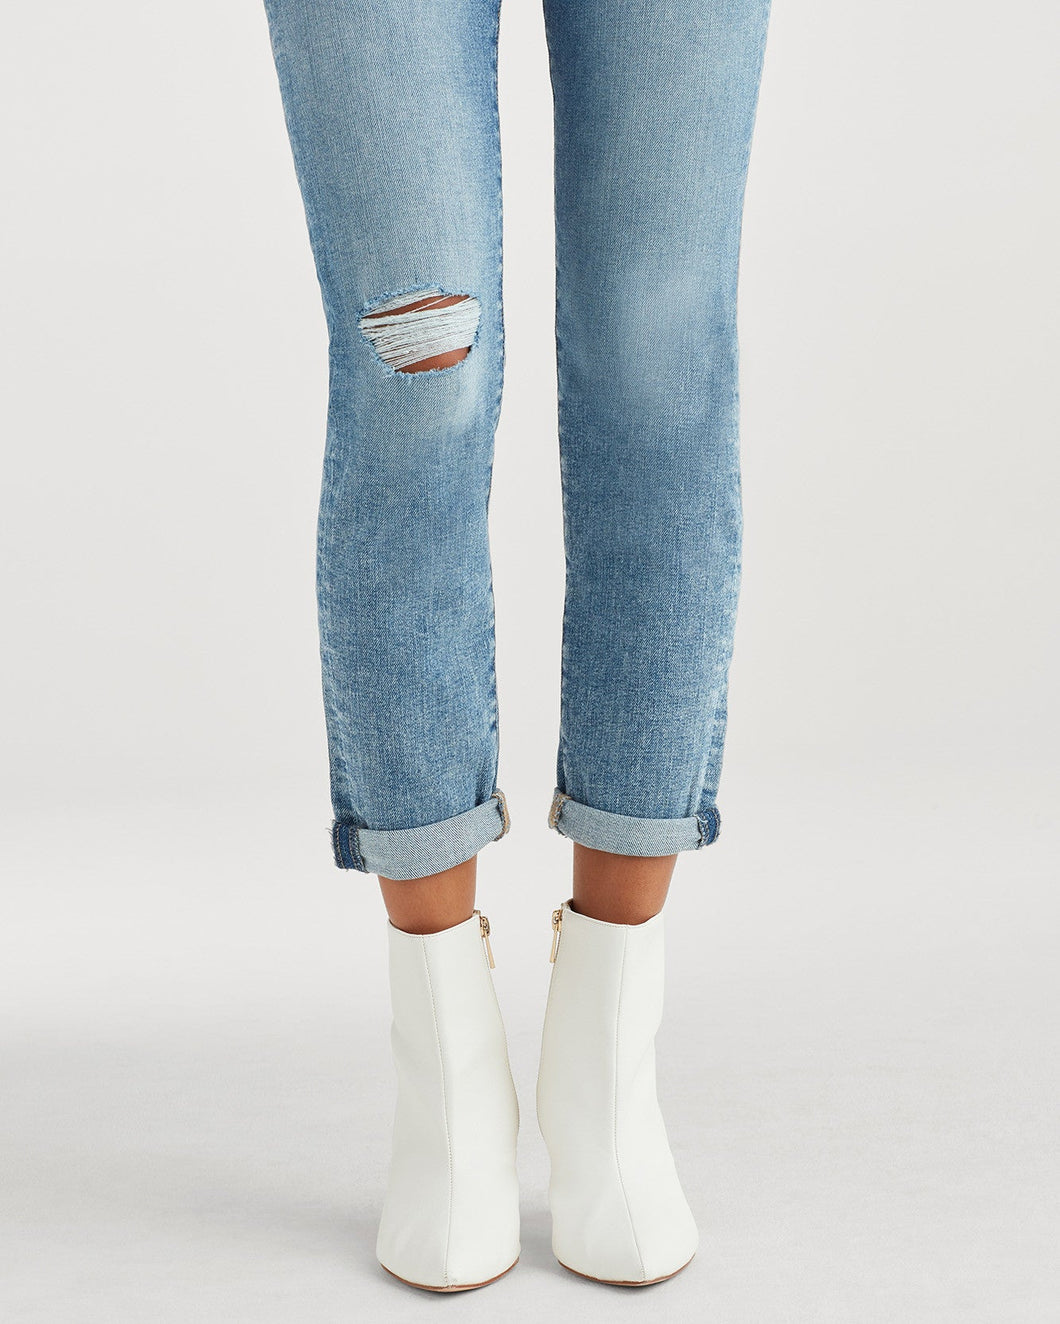 High Waist Josefina Skinny Boyfriend Jean with Busted Knee in Nolita